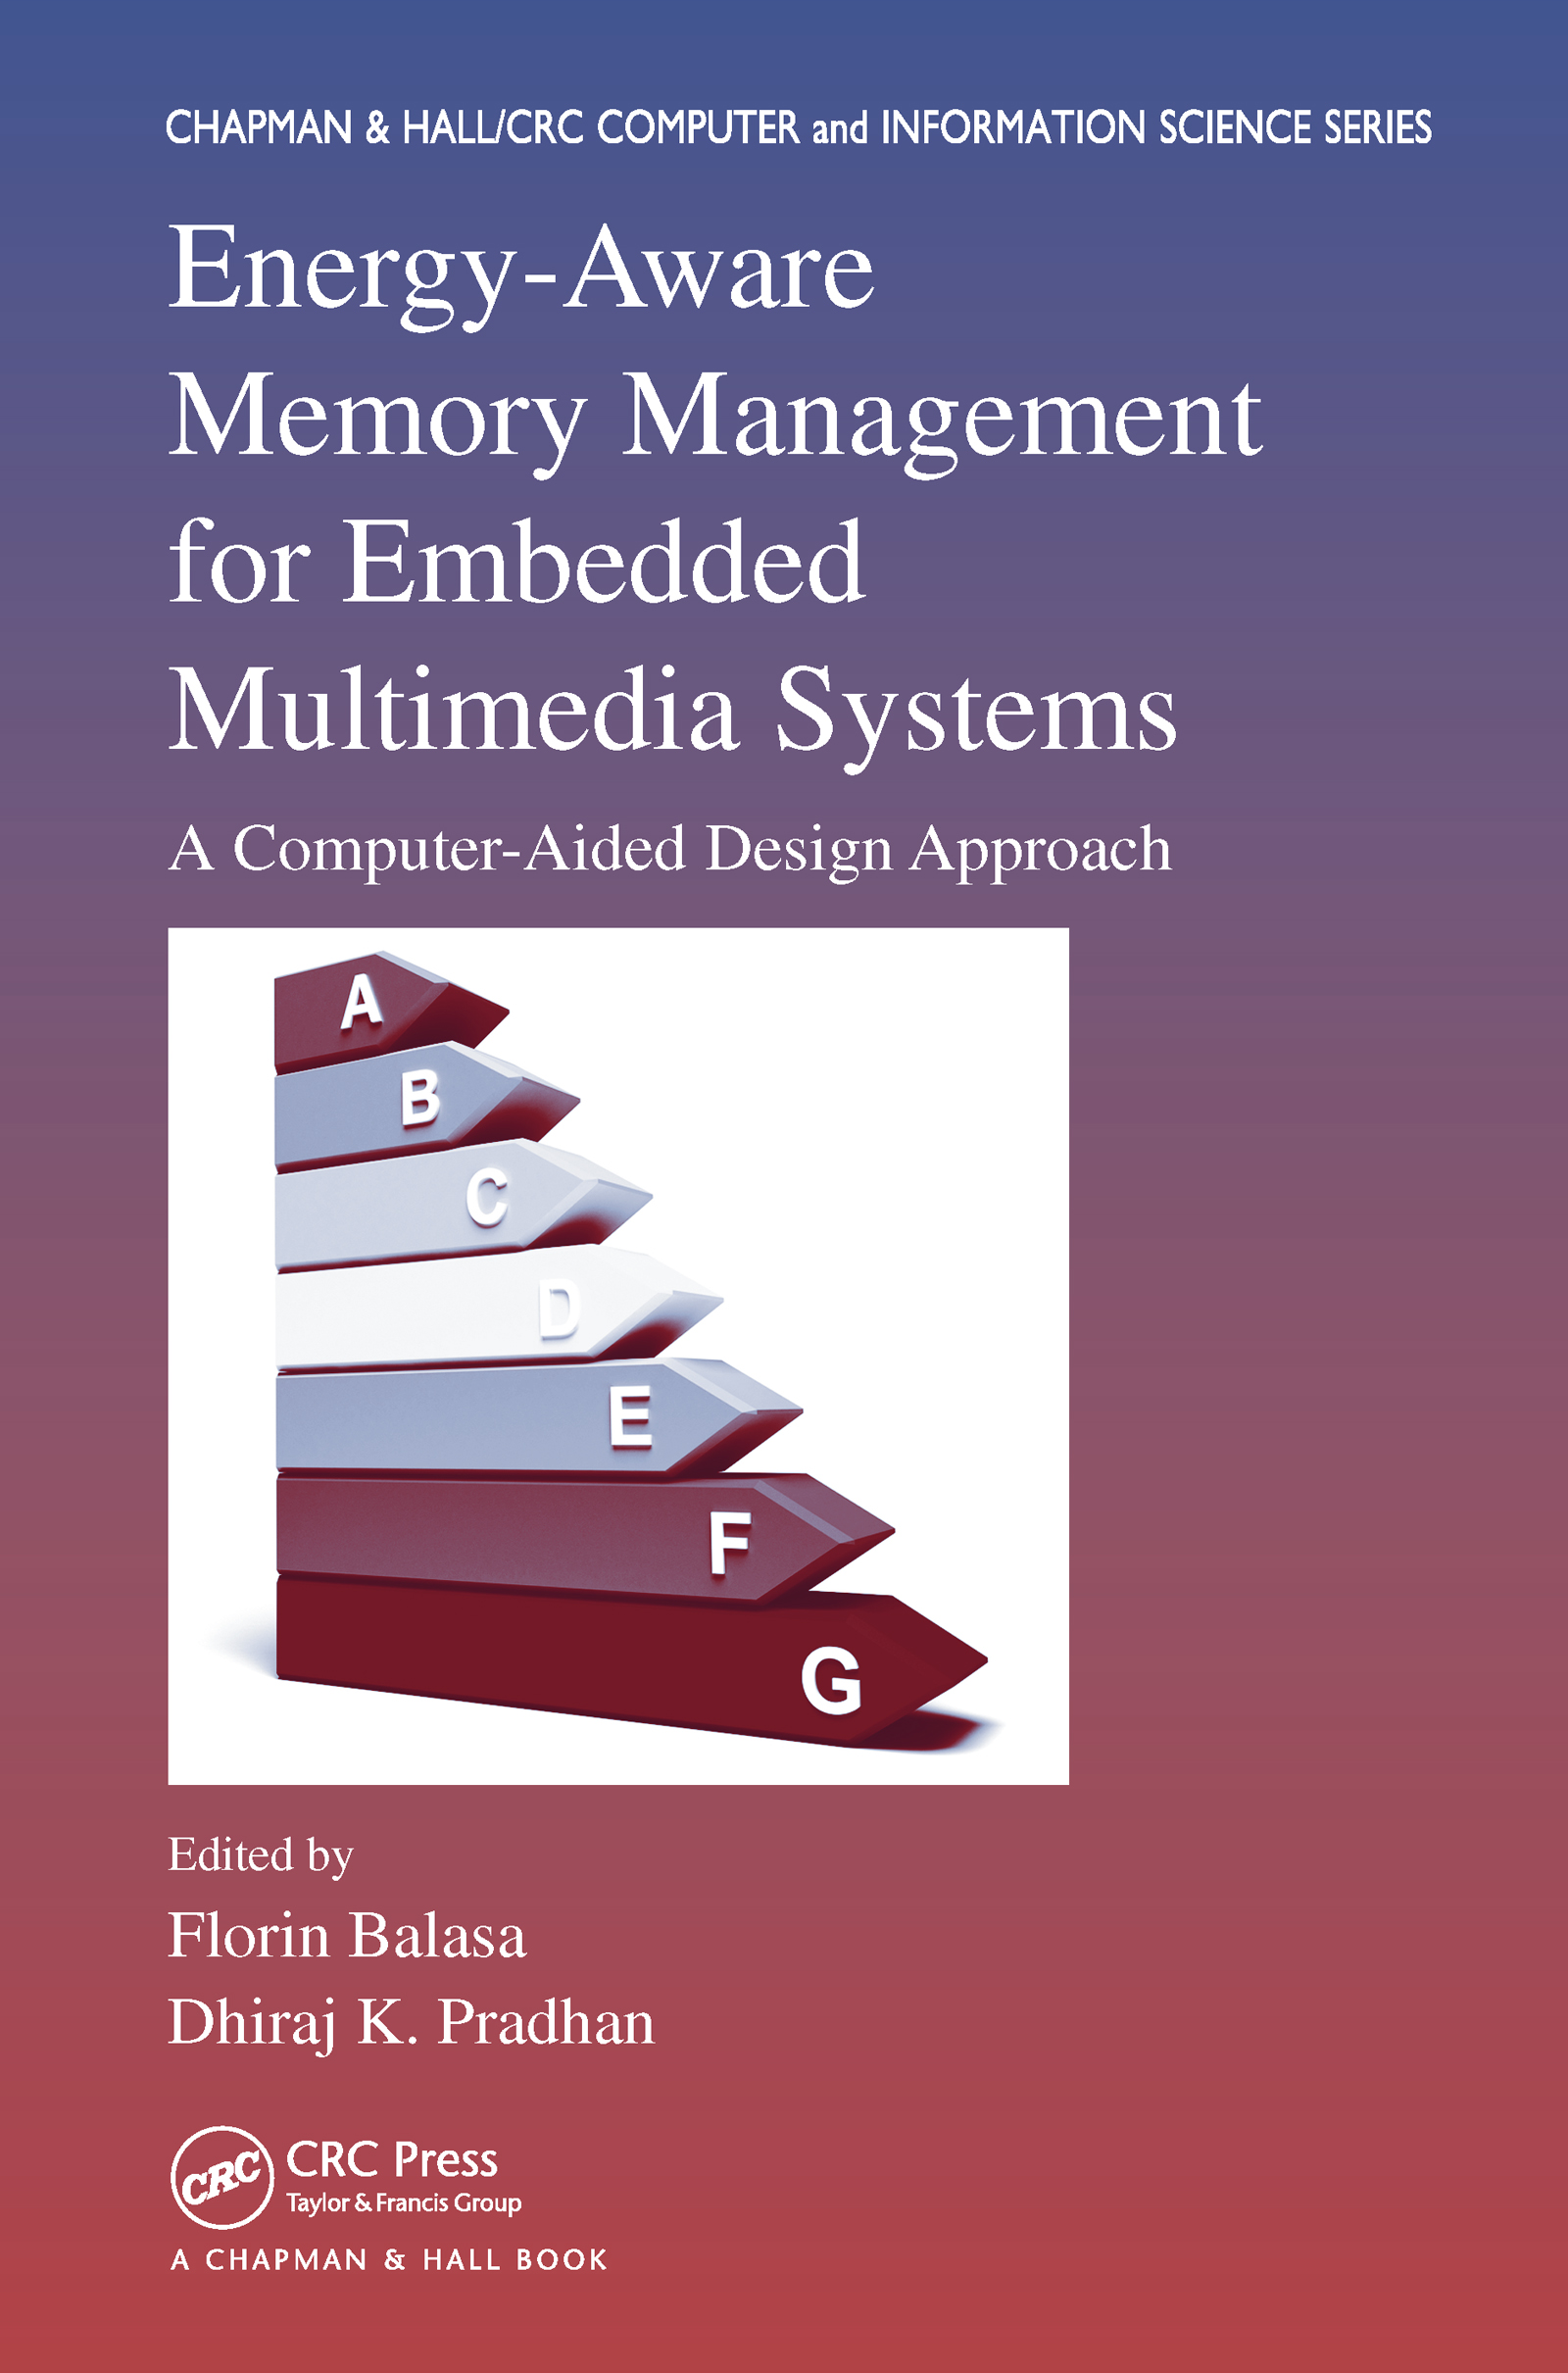 Energy-Aware Memory Management for Embedded Multimedia Systems: A Computer-Aided Design Approach book cover